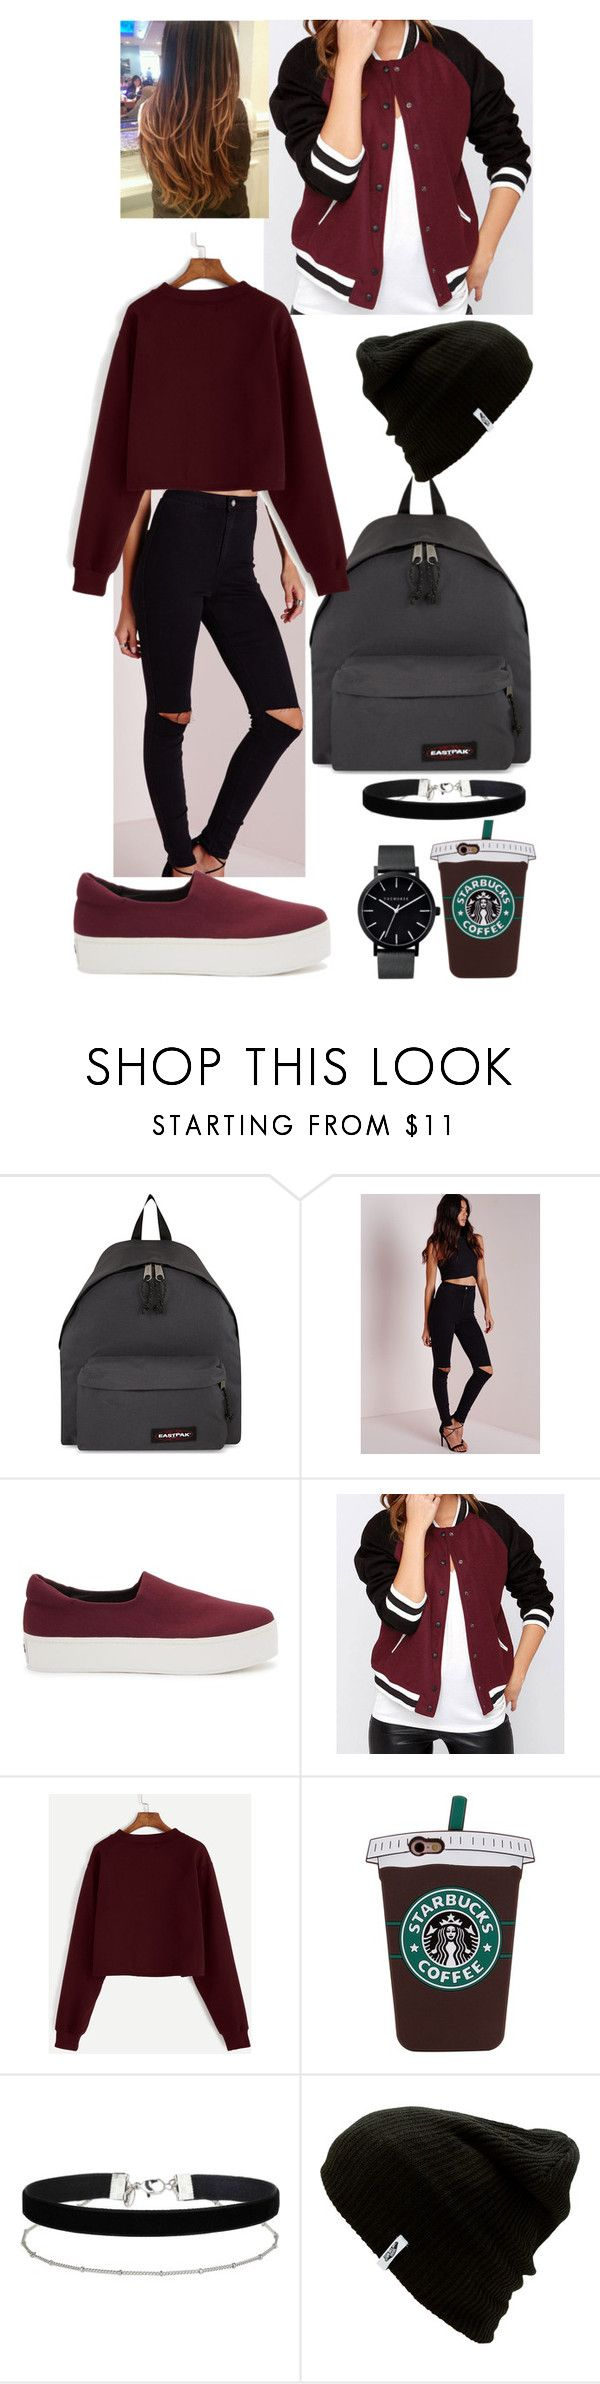 """""""School"""" by filipa-oliveira-lipa ❤ liked on Polyvore featuring Eastpak, Missguided, Opening Ceremony, Miss Selfridge, Vans and The Horse"""